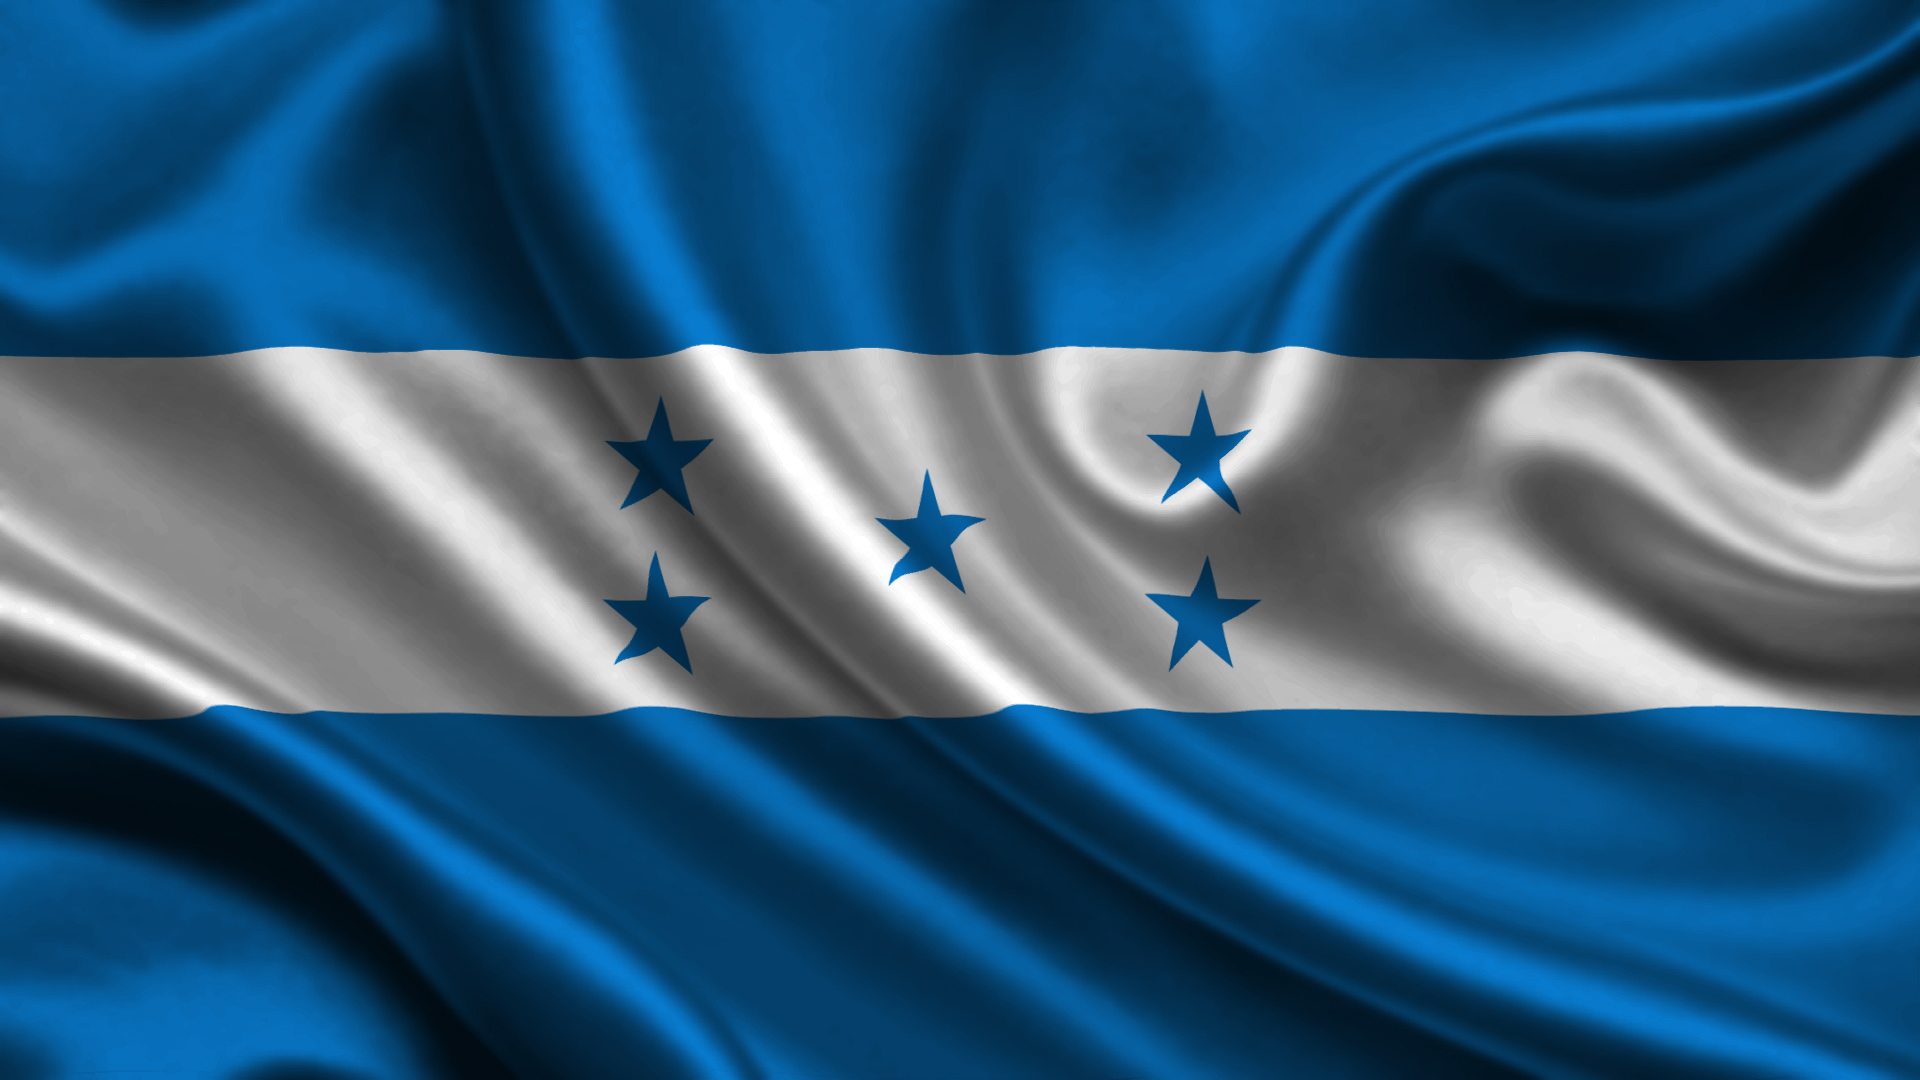 The five stars on the Honduran flag represent the five countries of Central America.